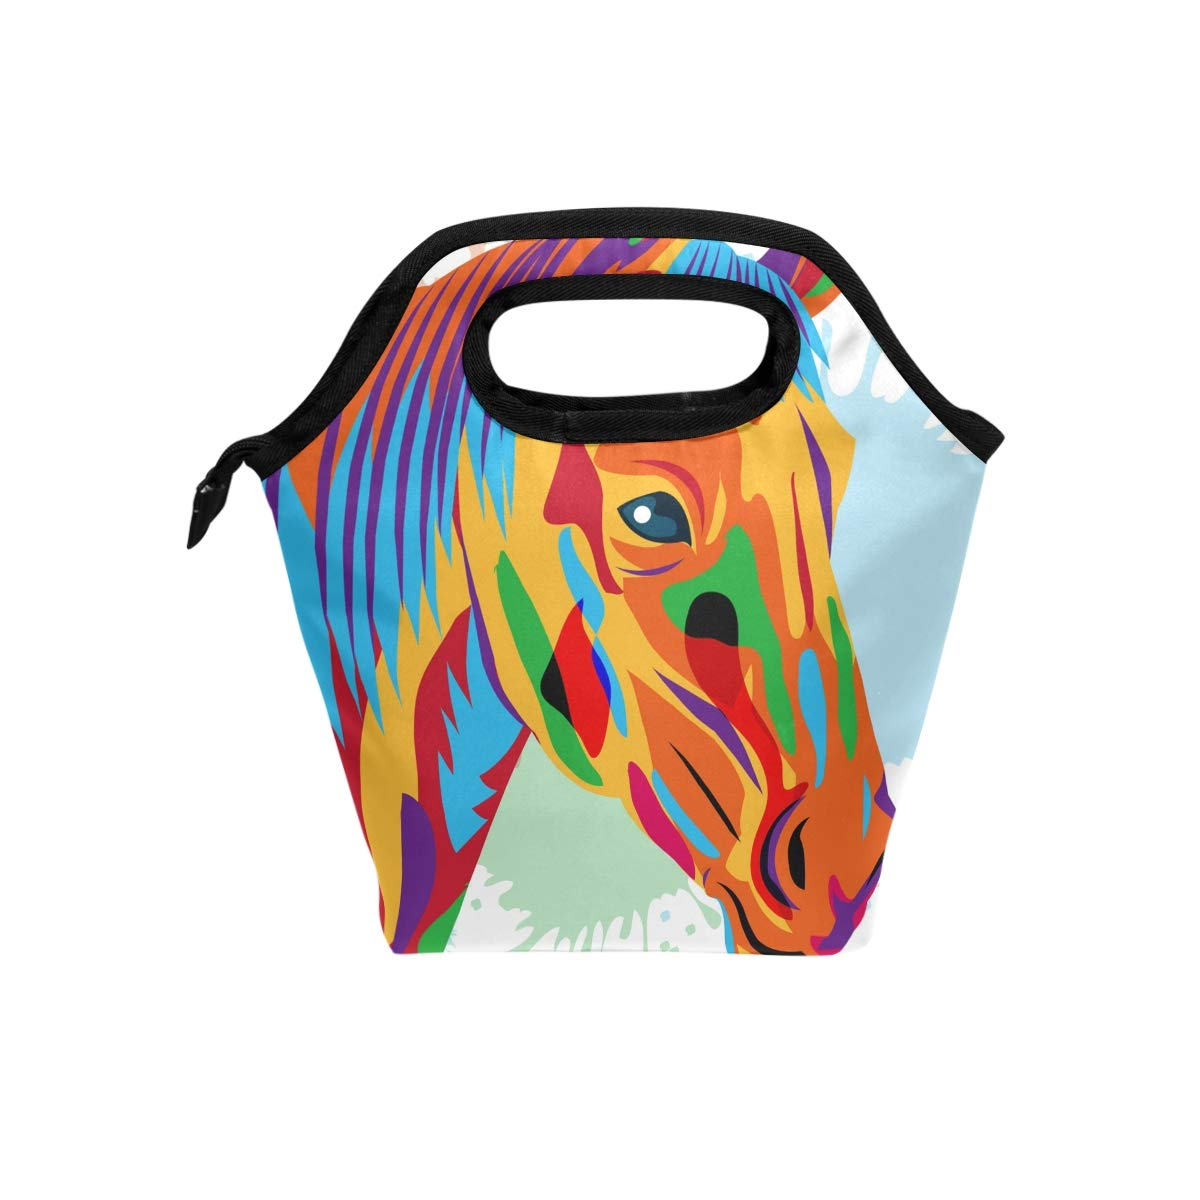 Amazon.com: Painted Horse Lunch Bag Tote Bag Lunch Handbags.